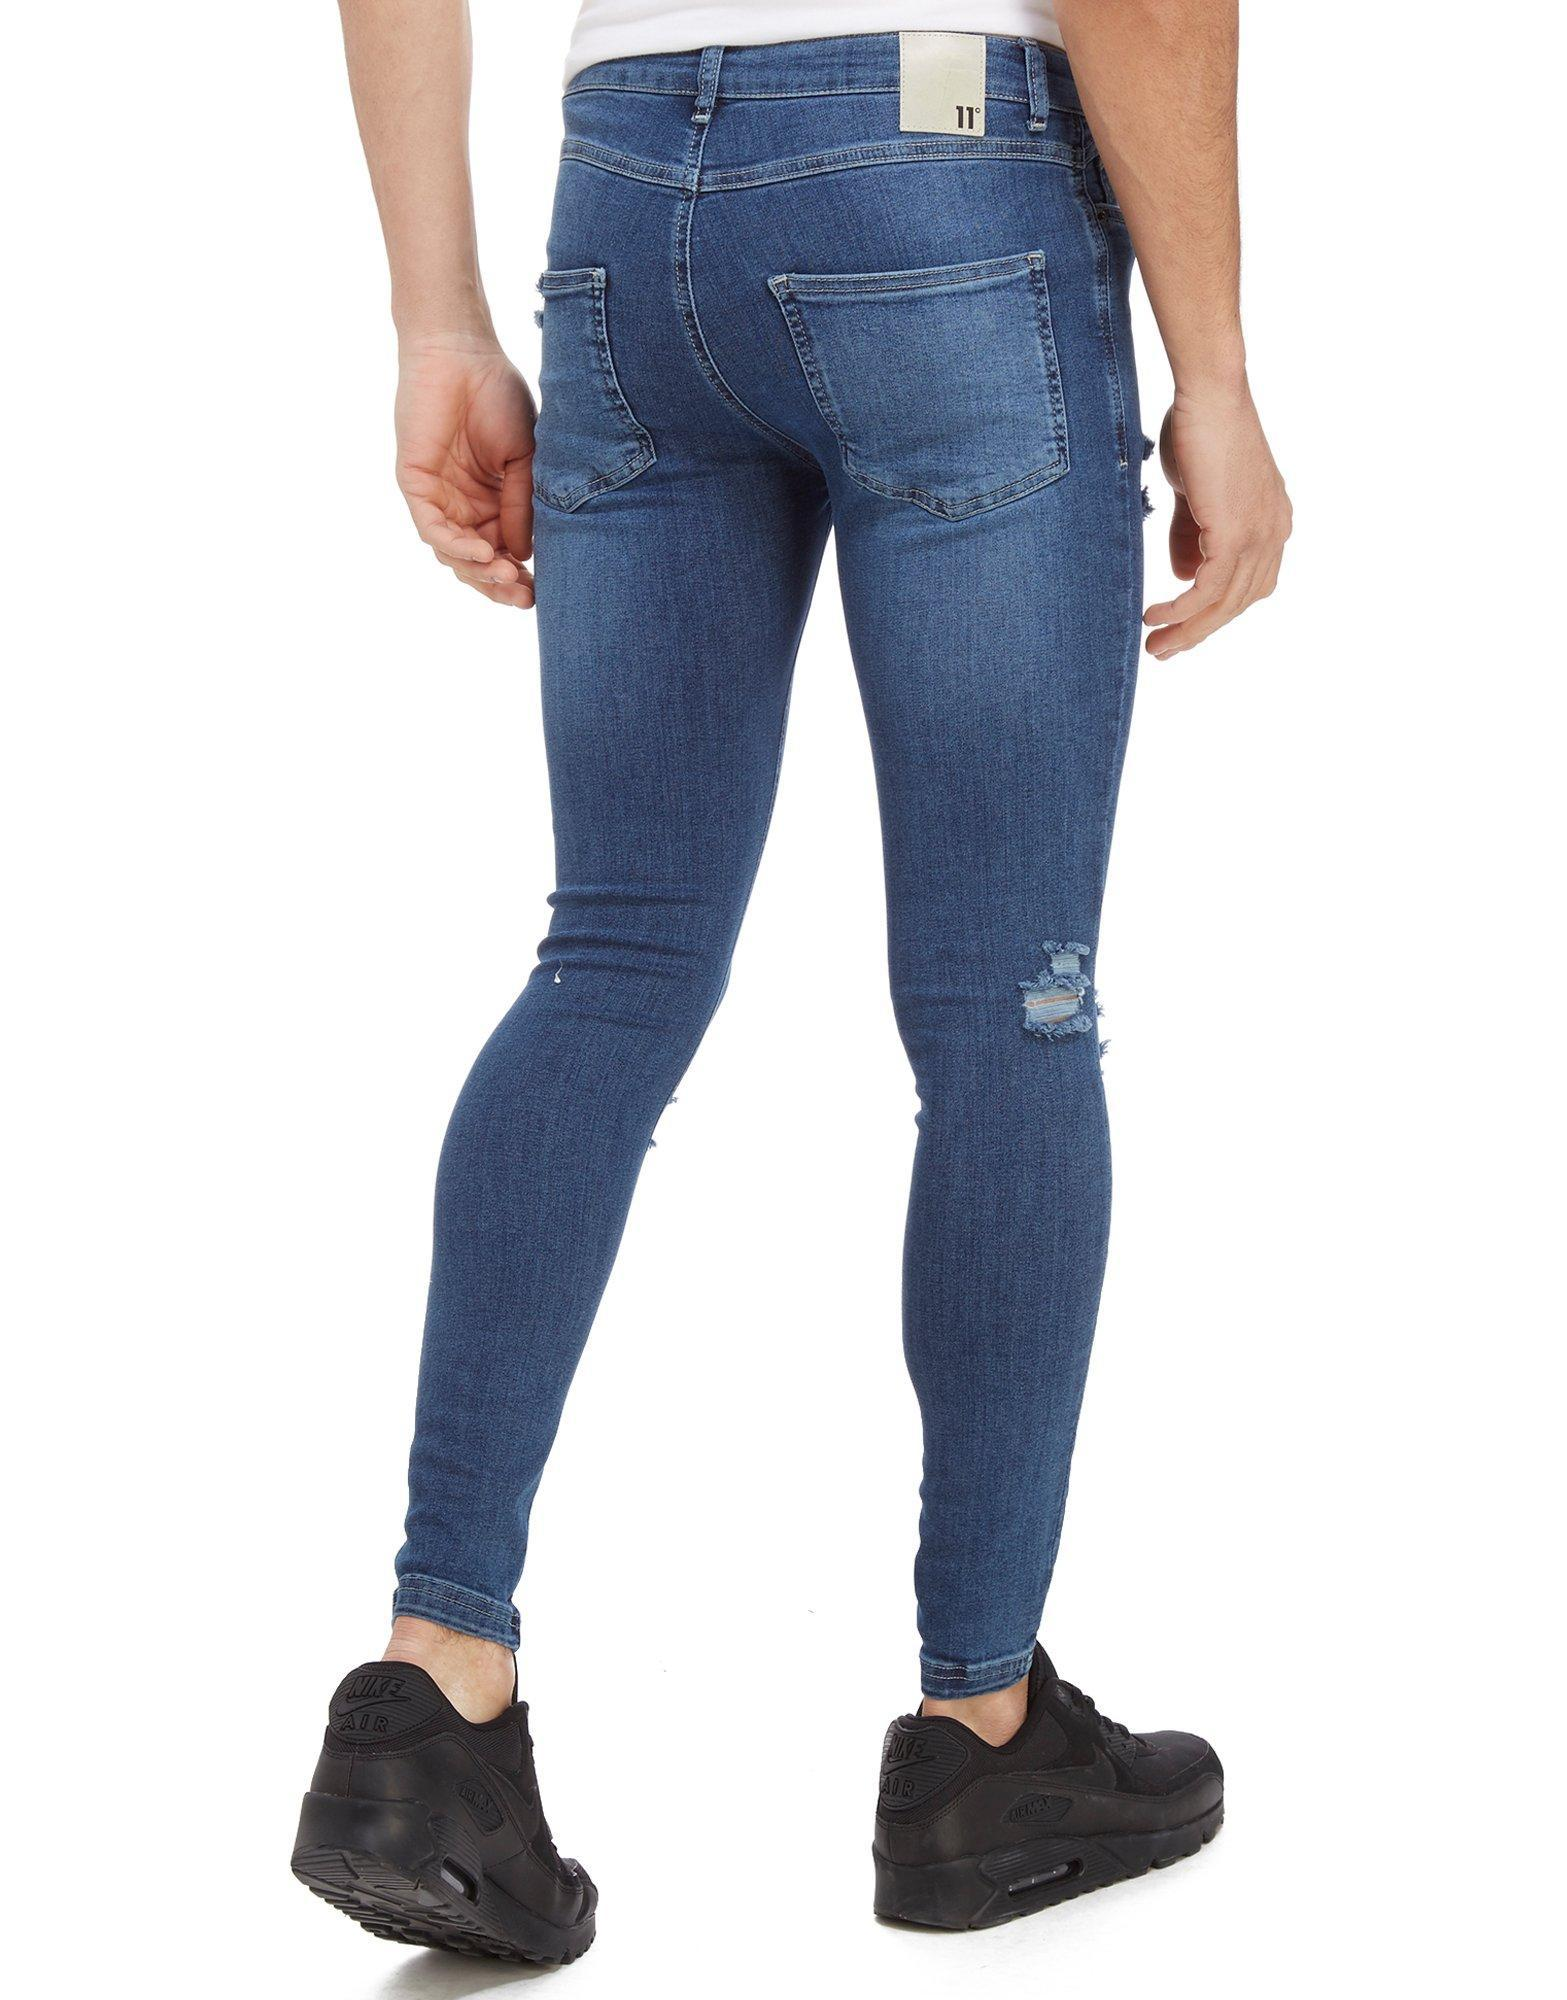 Lyst - 11 Degrees Ripped Denim Jeans in Blue for Men - Save  30.158730158730165% 1e566bb77a4a